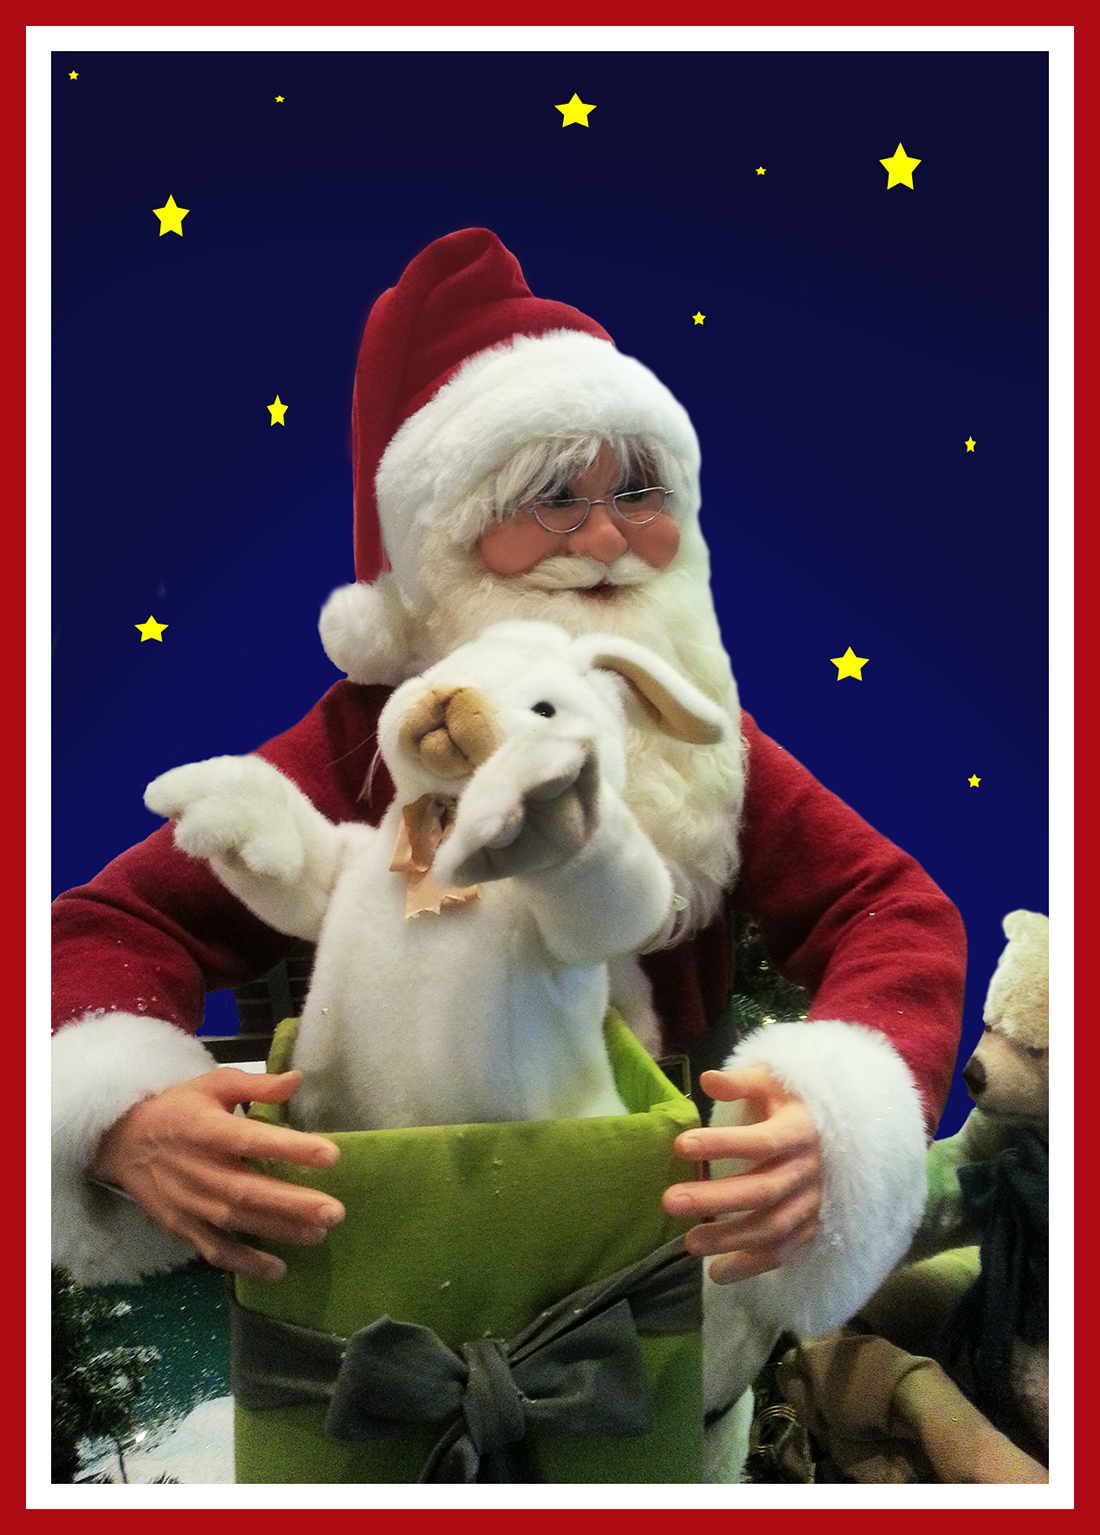 Father Christmas with a bunny